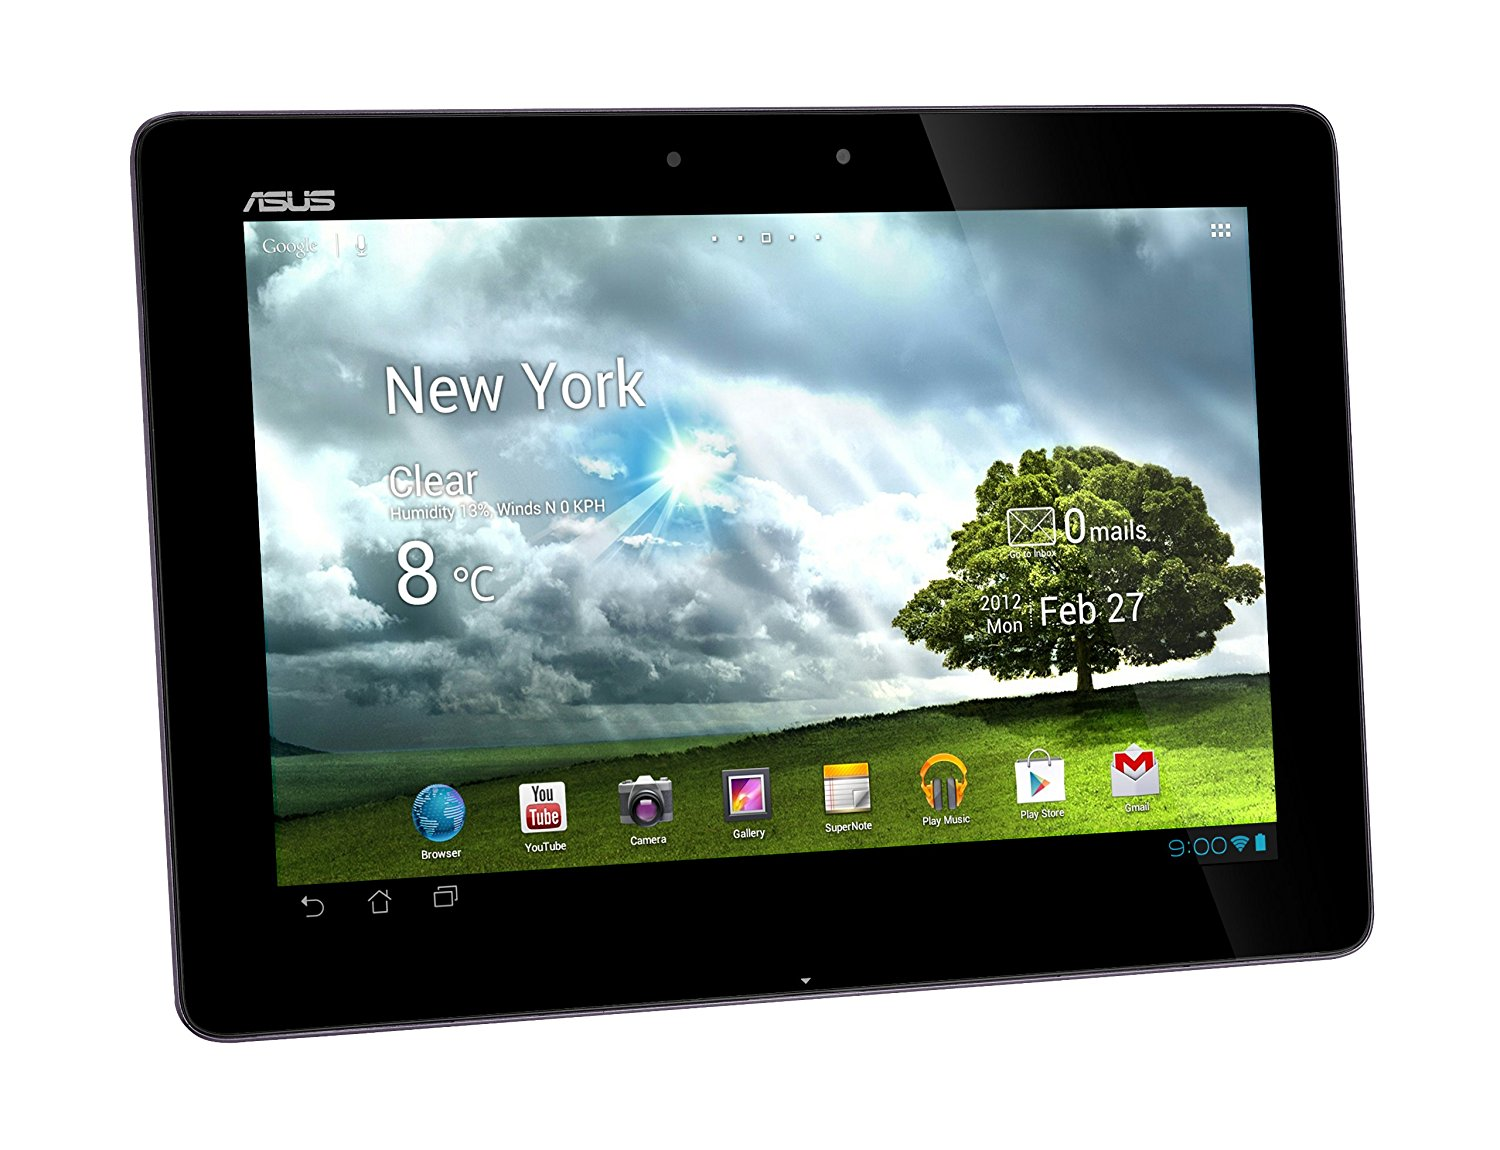 Come resettare Tablet Asus